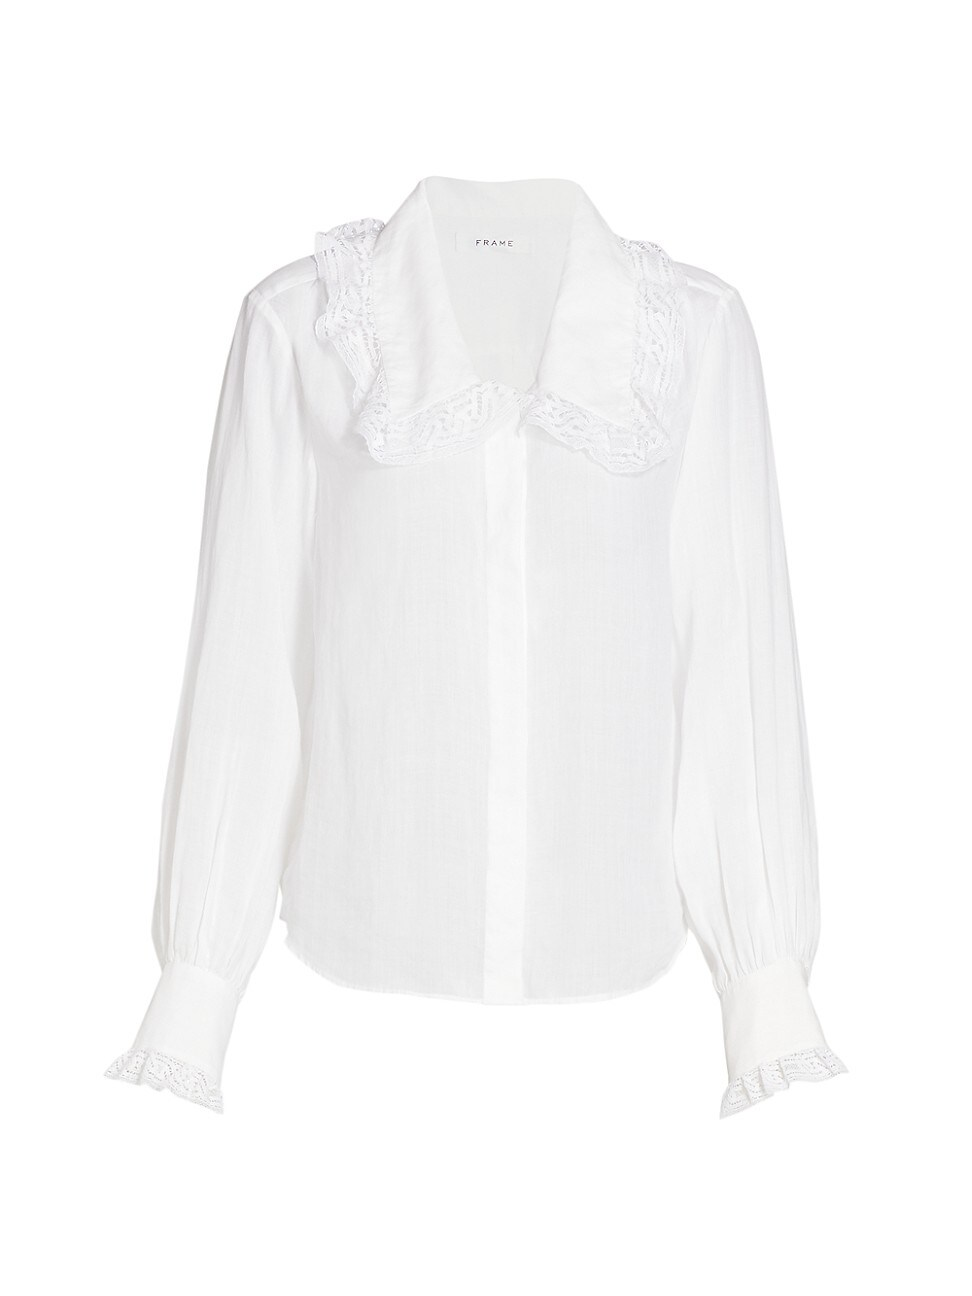 FRAME WOMEN'S LACE-TRIM WIDE-COLLAR SHIRT